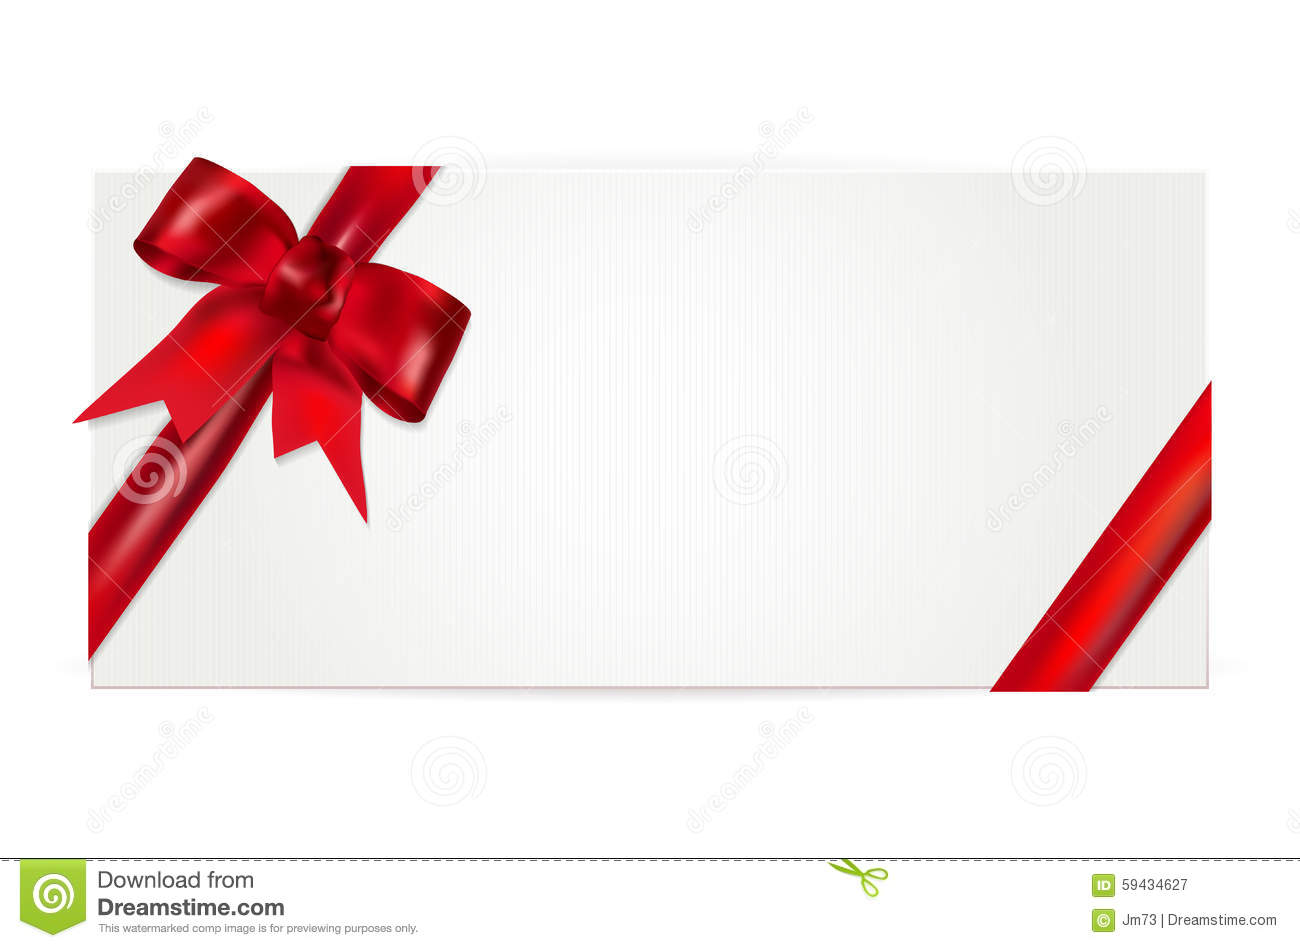 Gift voucher with red bow - isolated on white. Vector illustration.